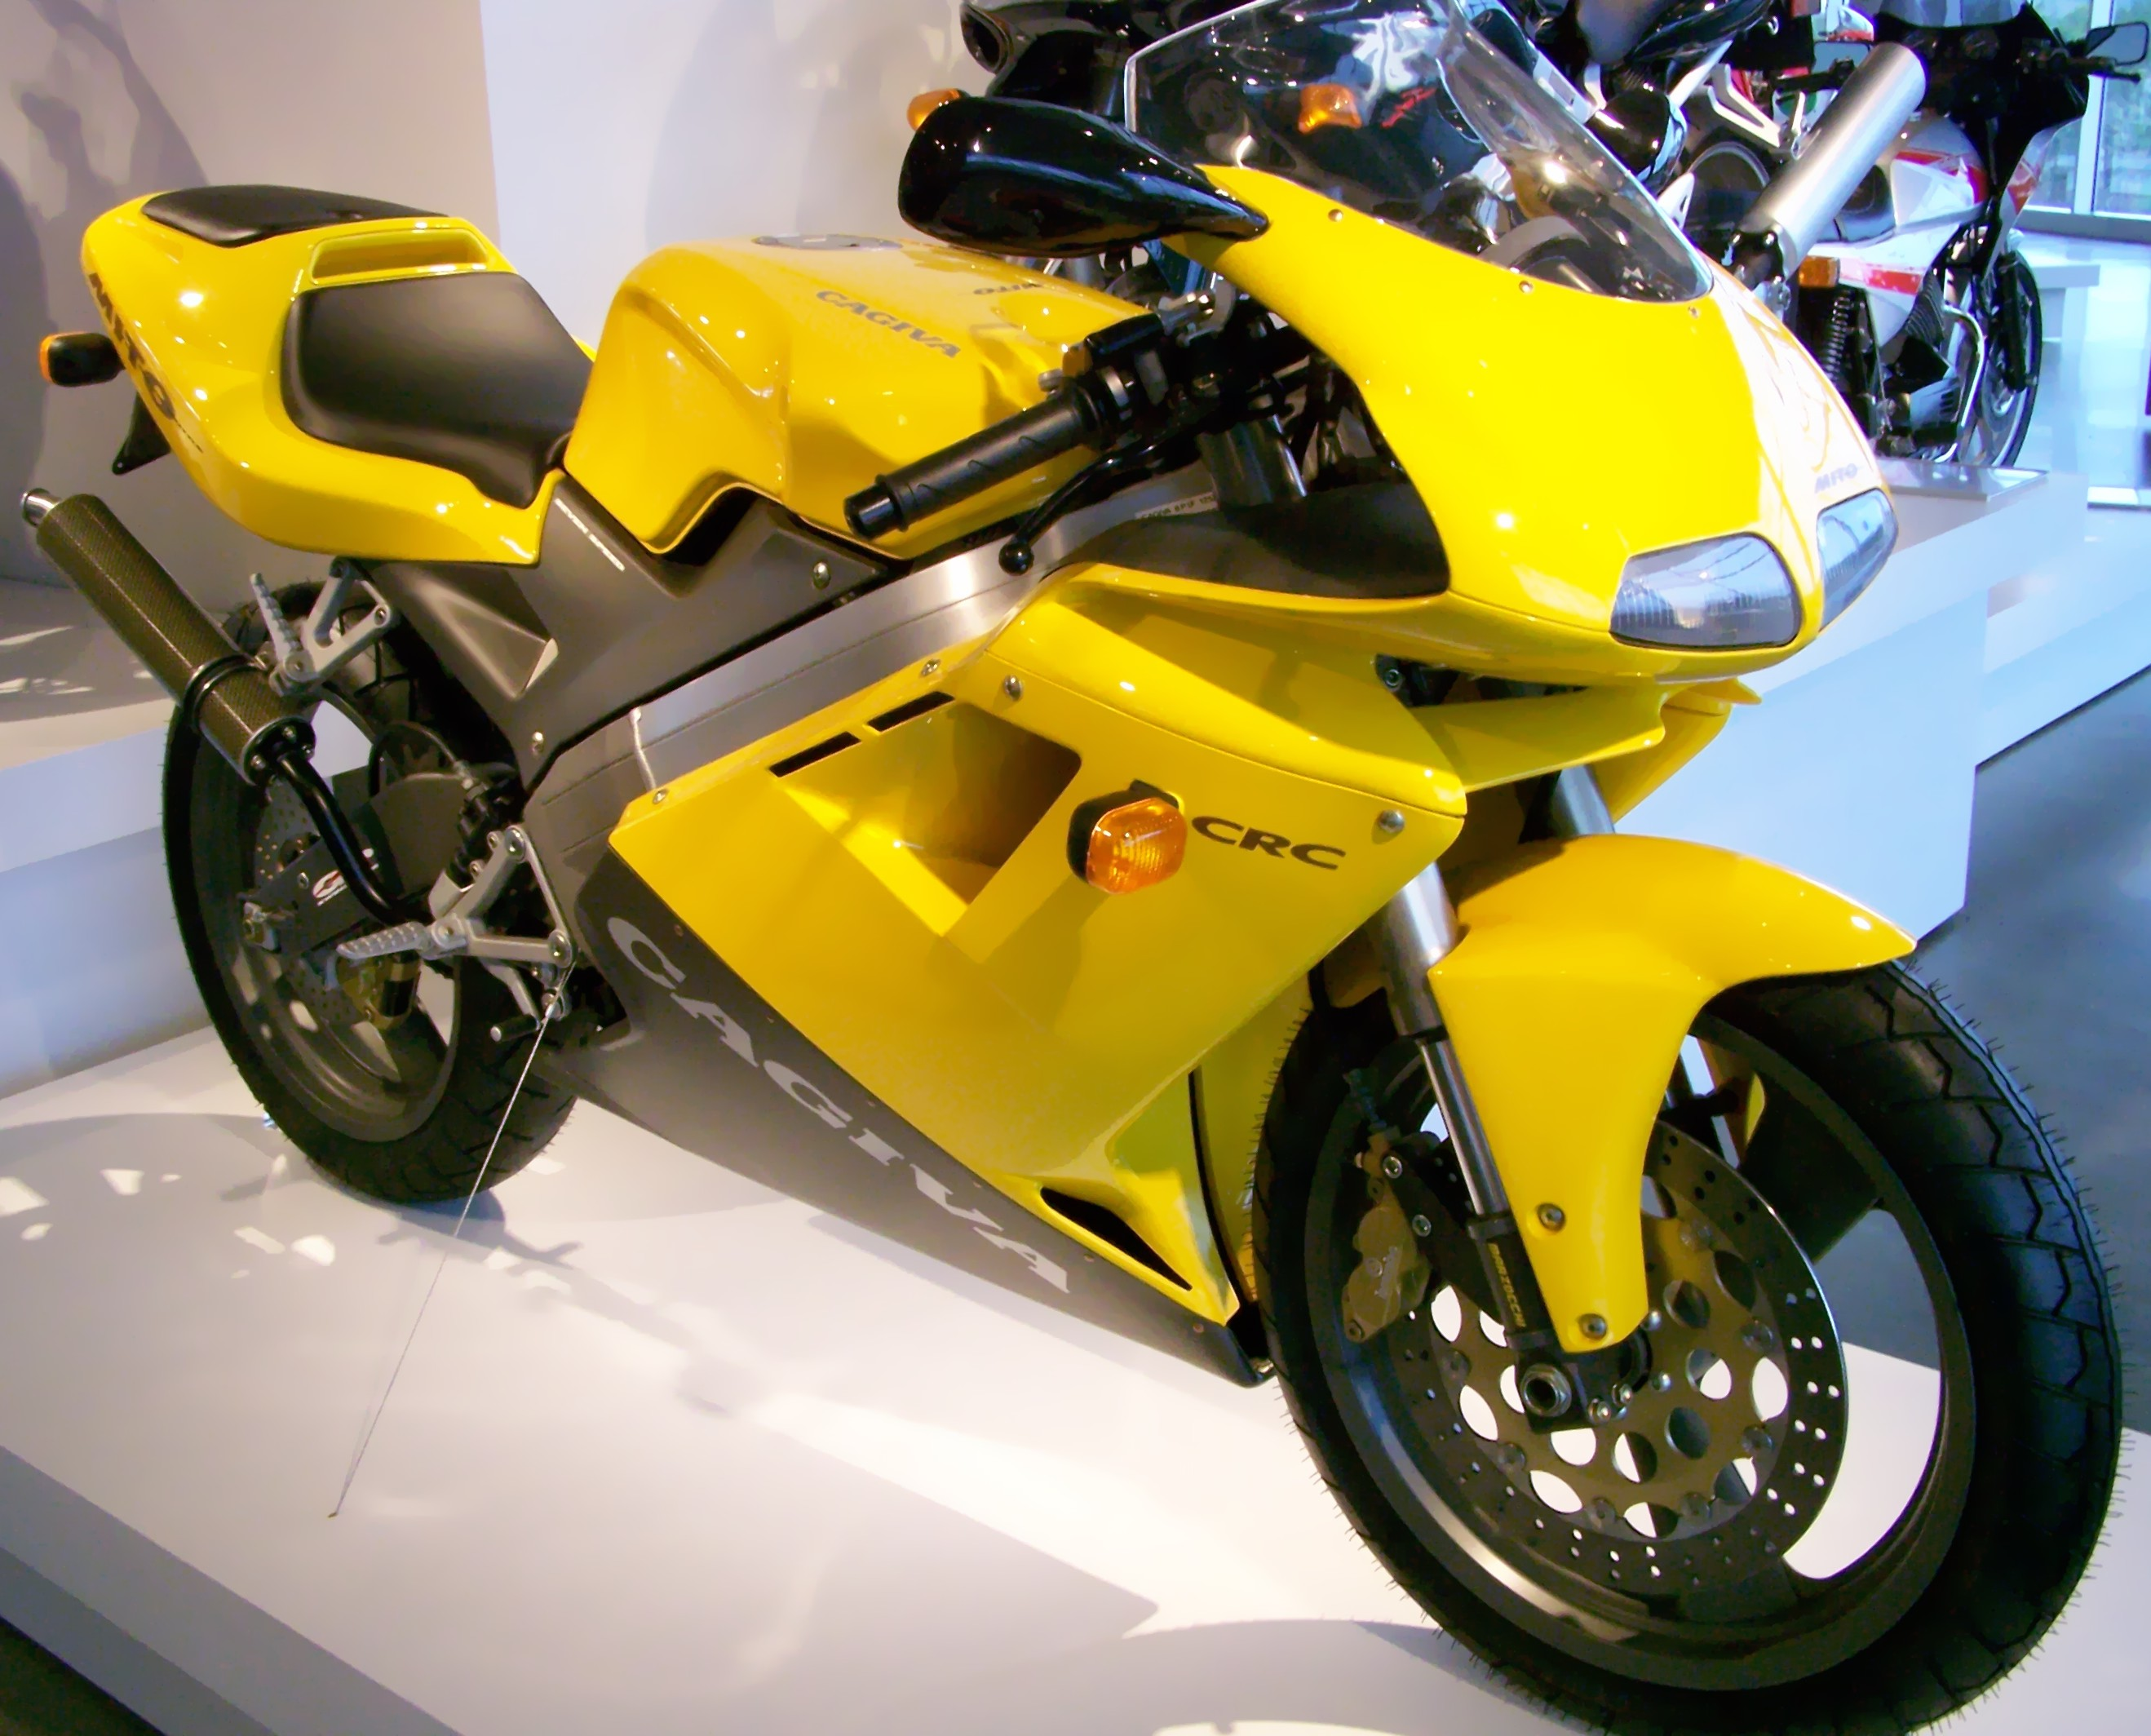 Cagiva Super City 125 1997 images #67230